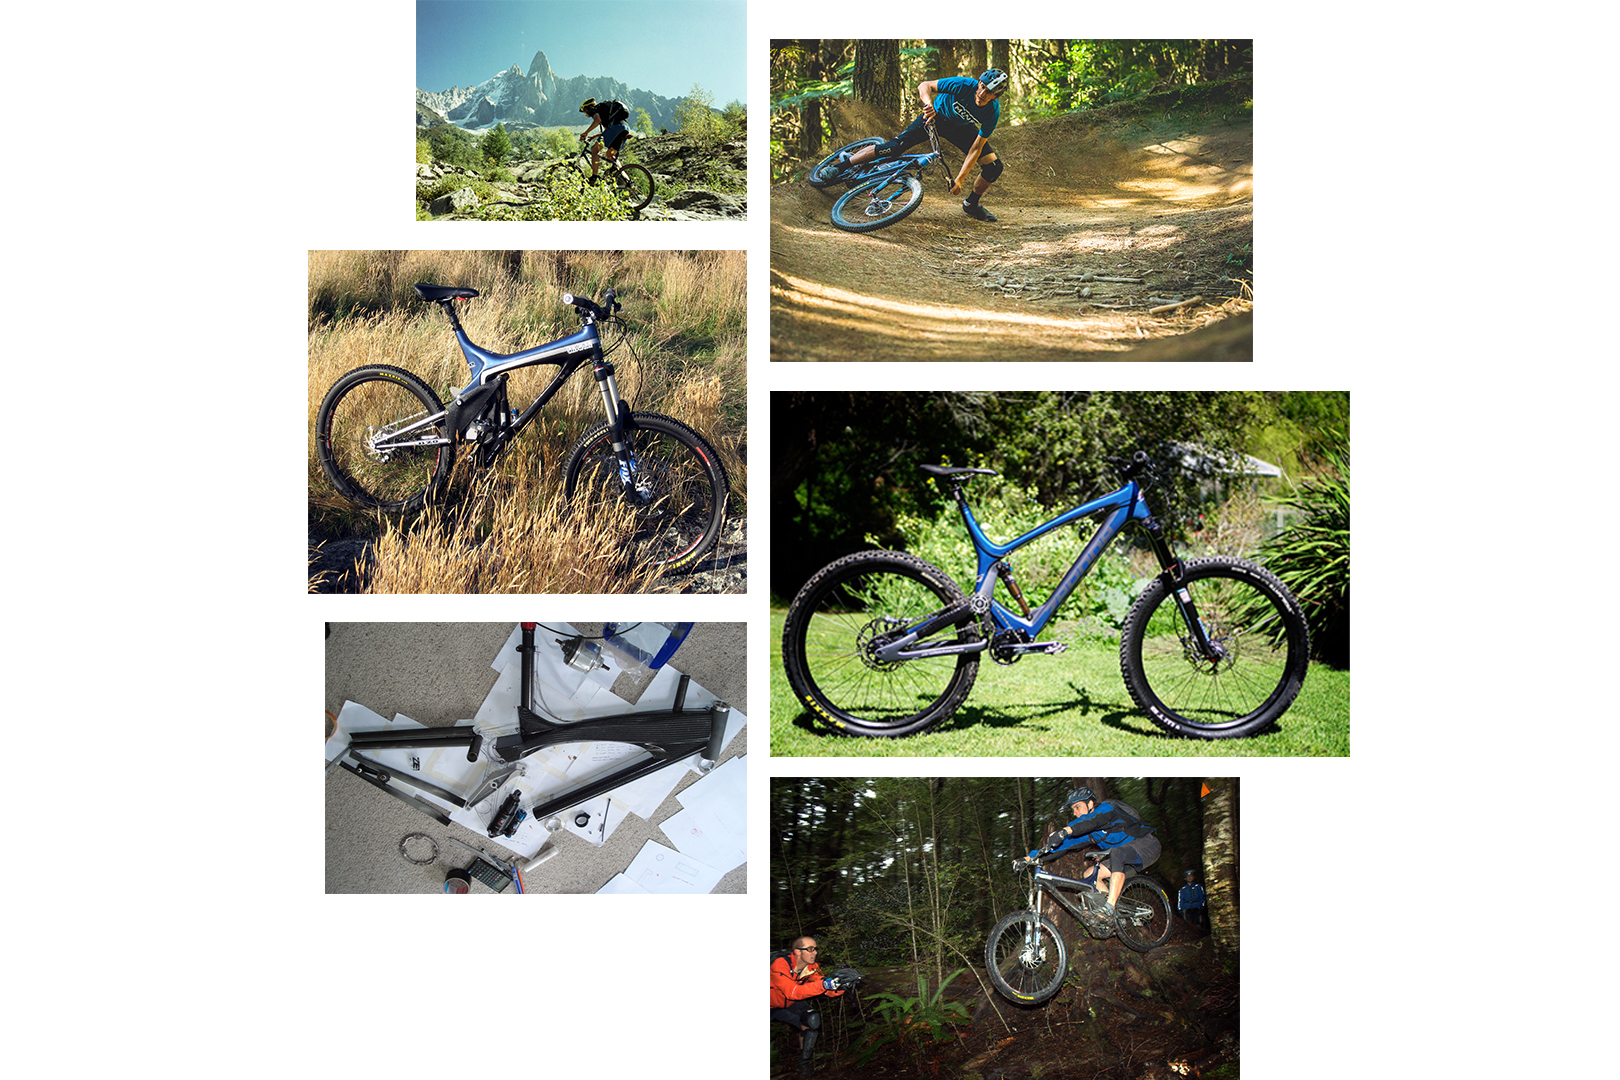 The history behind the bikes